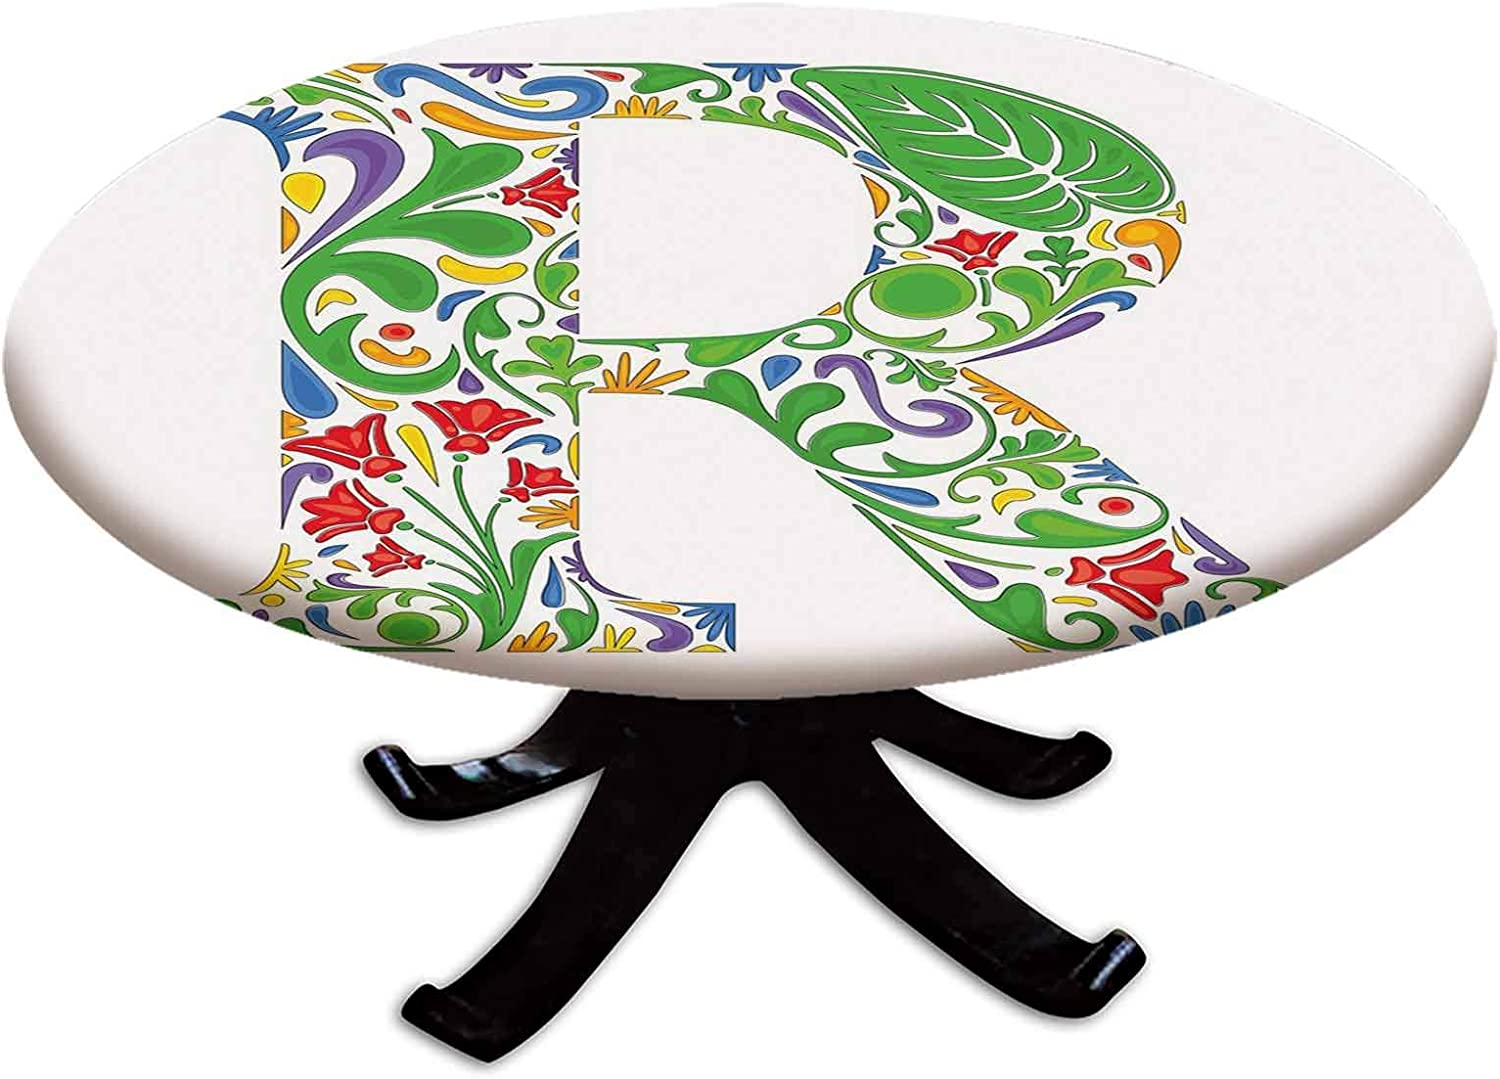 Elastic Edged Polyester Fitted Table Upperca Themed Cover Floral セール特価品 新作からSALEアイテム等お得な商品 満載